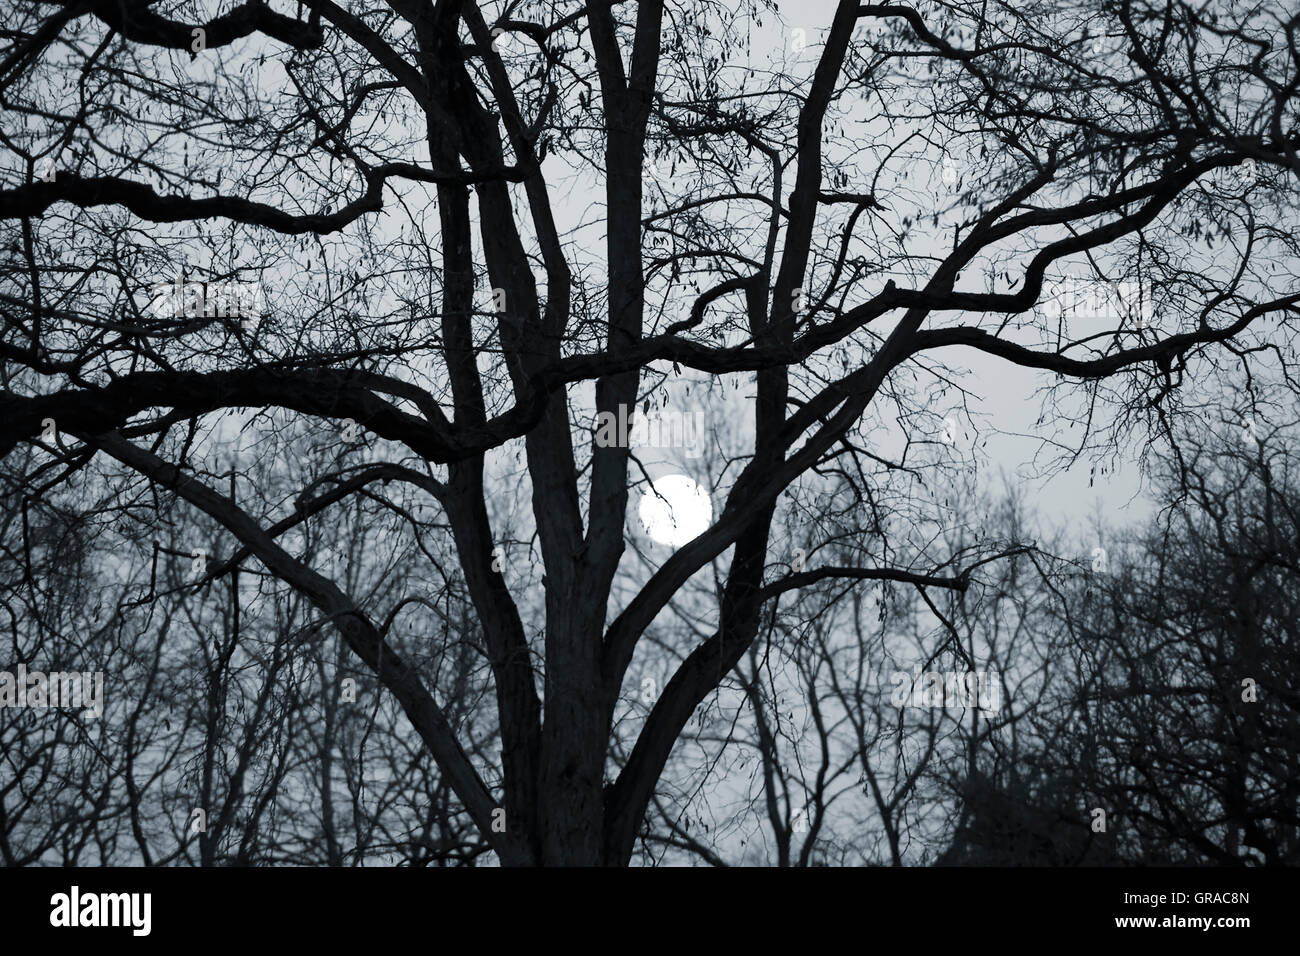 Moon Between The Branches - Stock Image